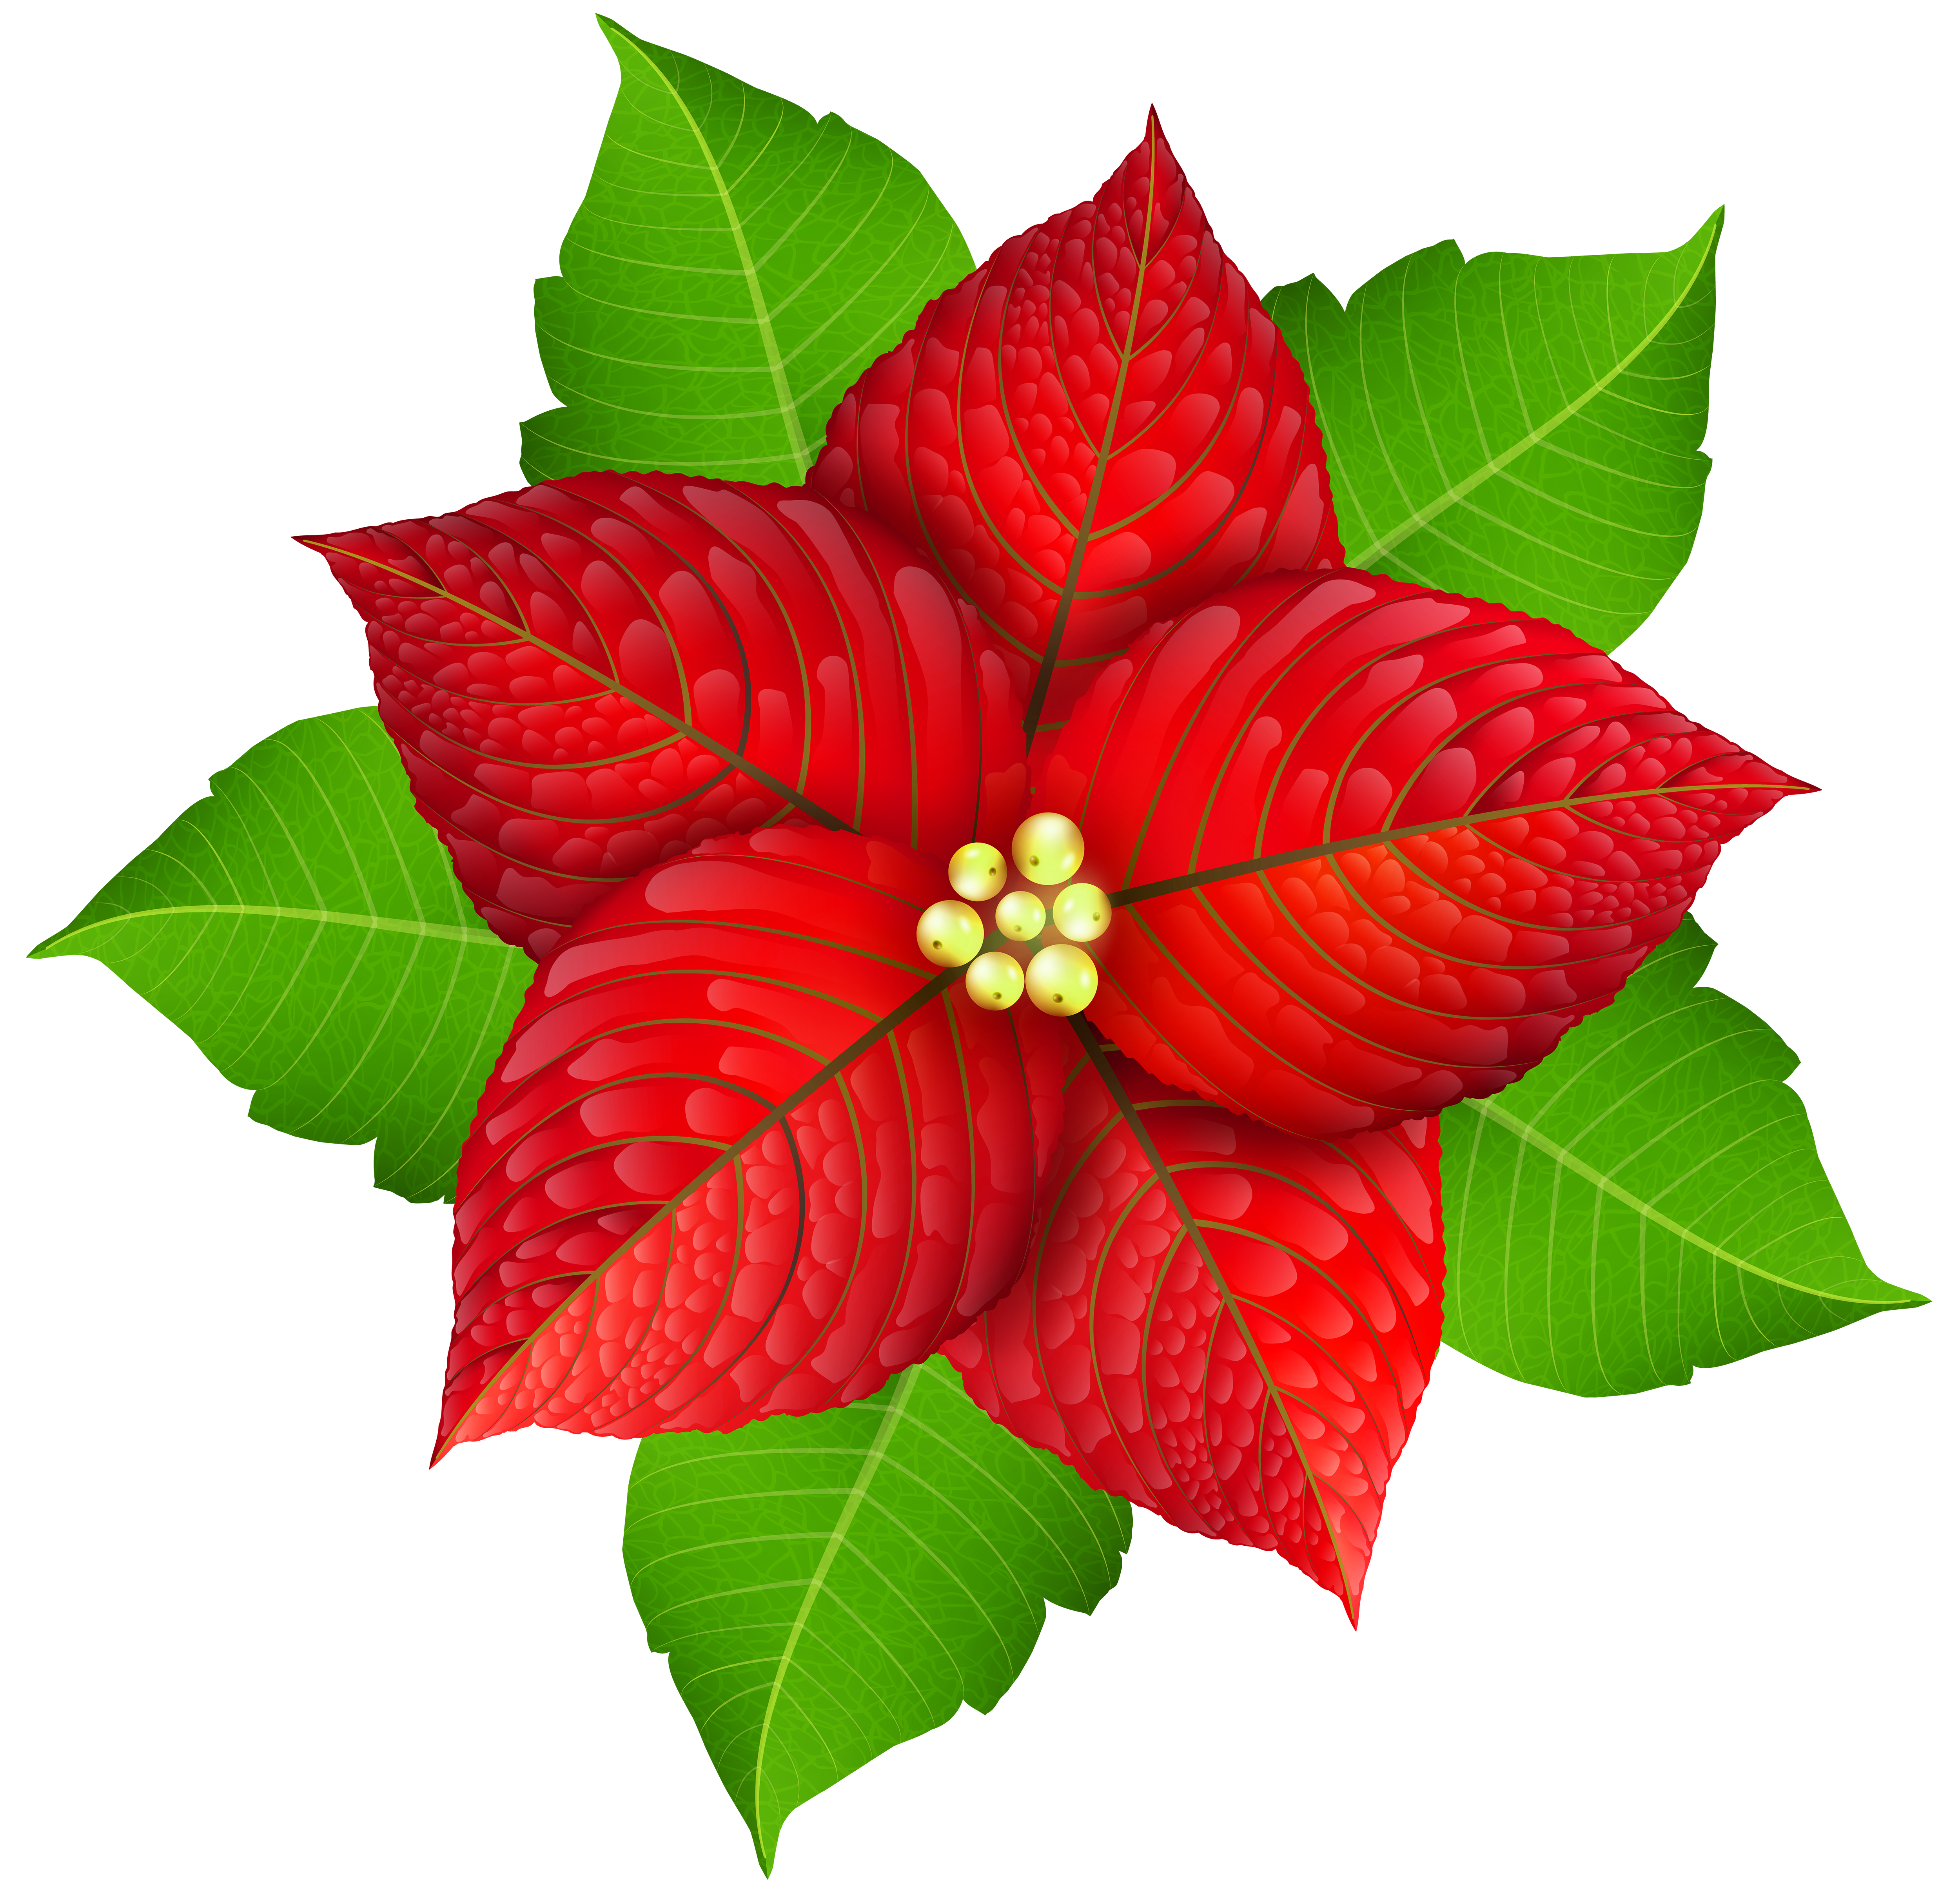 Poinsettia transparent. Christmas png image gallery stock